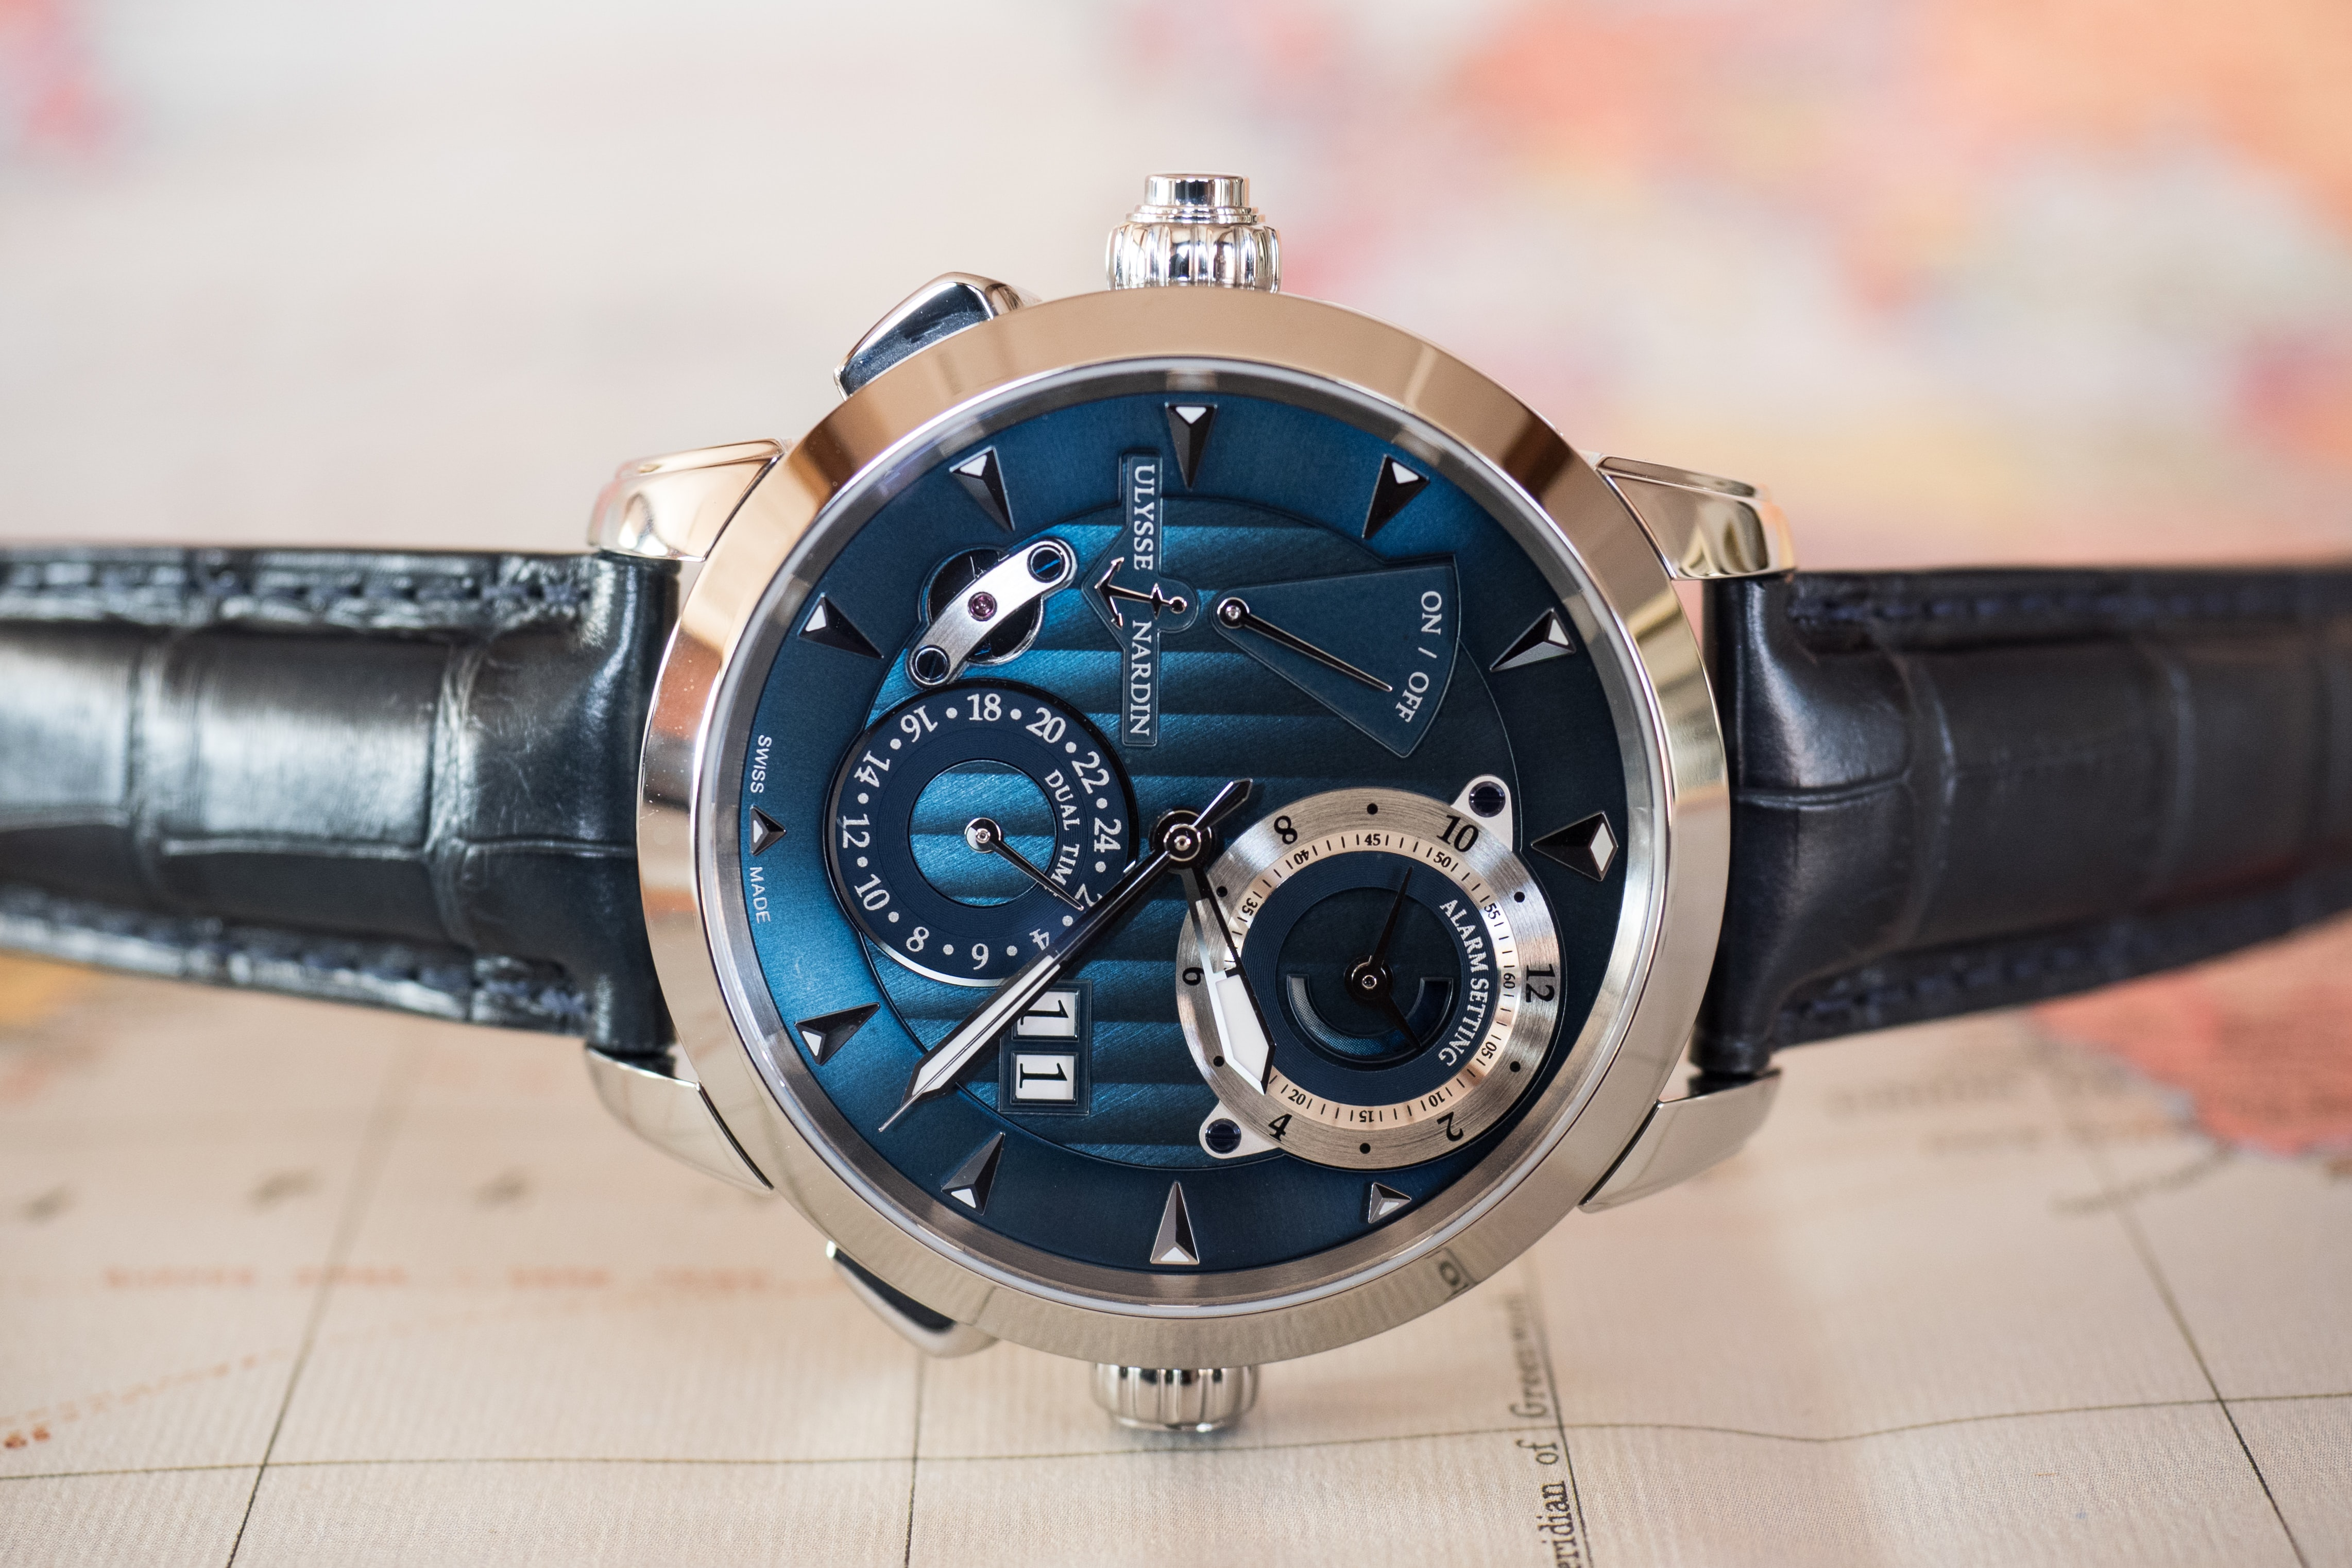 Ulysse Nardin Classic Sonata dial Hands-On: The Ulysse Nardin Classic Sonata, A Self-Winding Alarm Watch With A Cathedral Gong (And More) Hands-On: The Ulysse Nardin Classic Sonata, A Self-Winding Alarm Watch With A Cathedral Gong (And More) PA190328